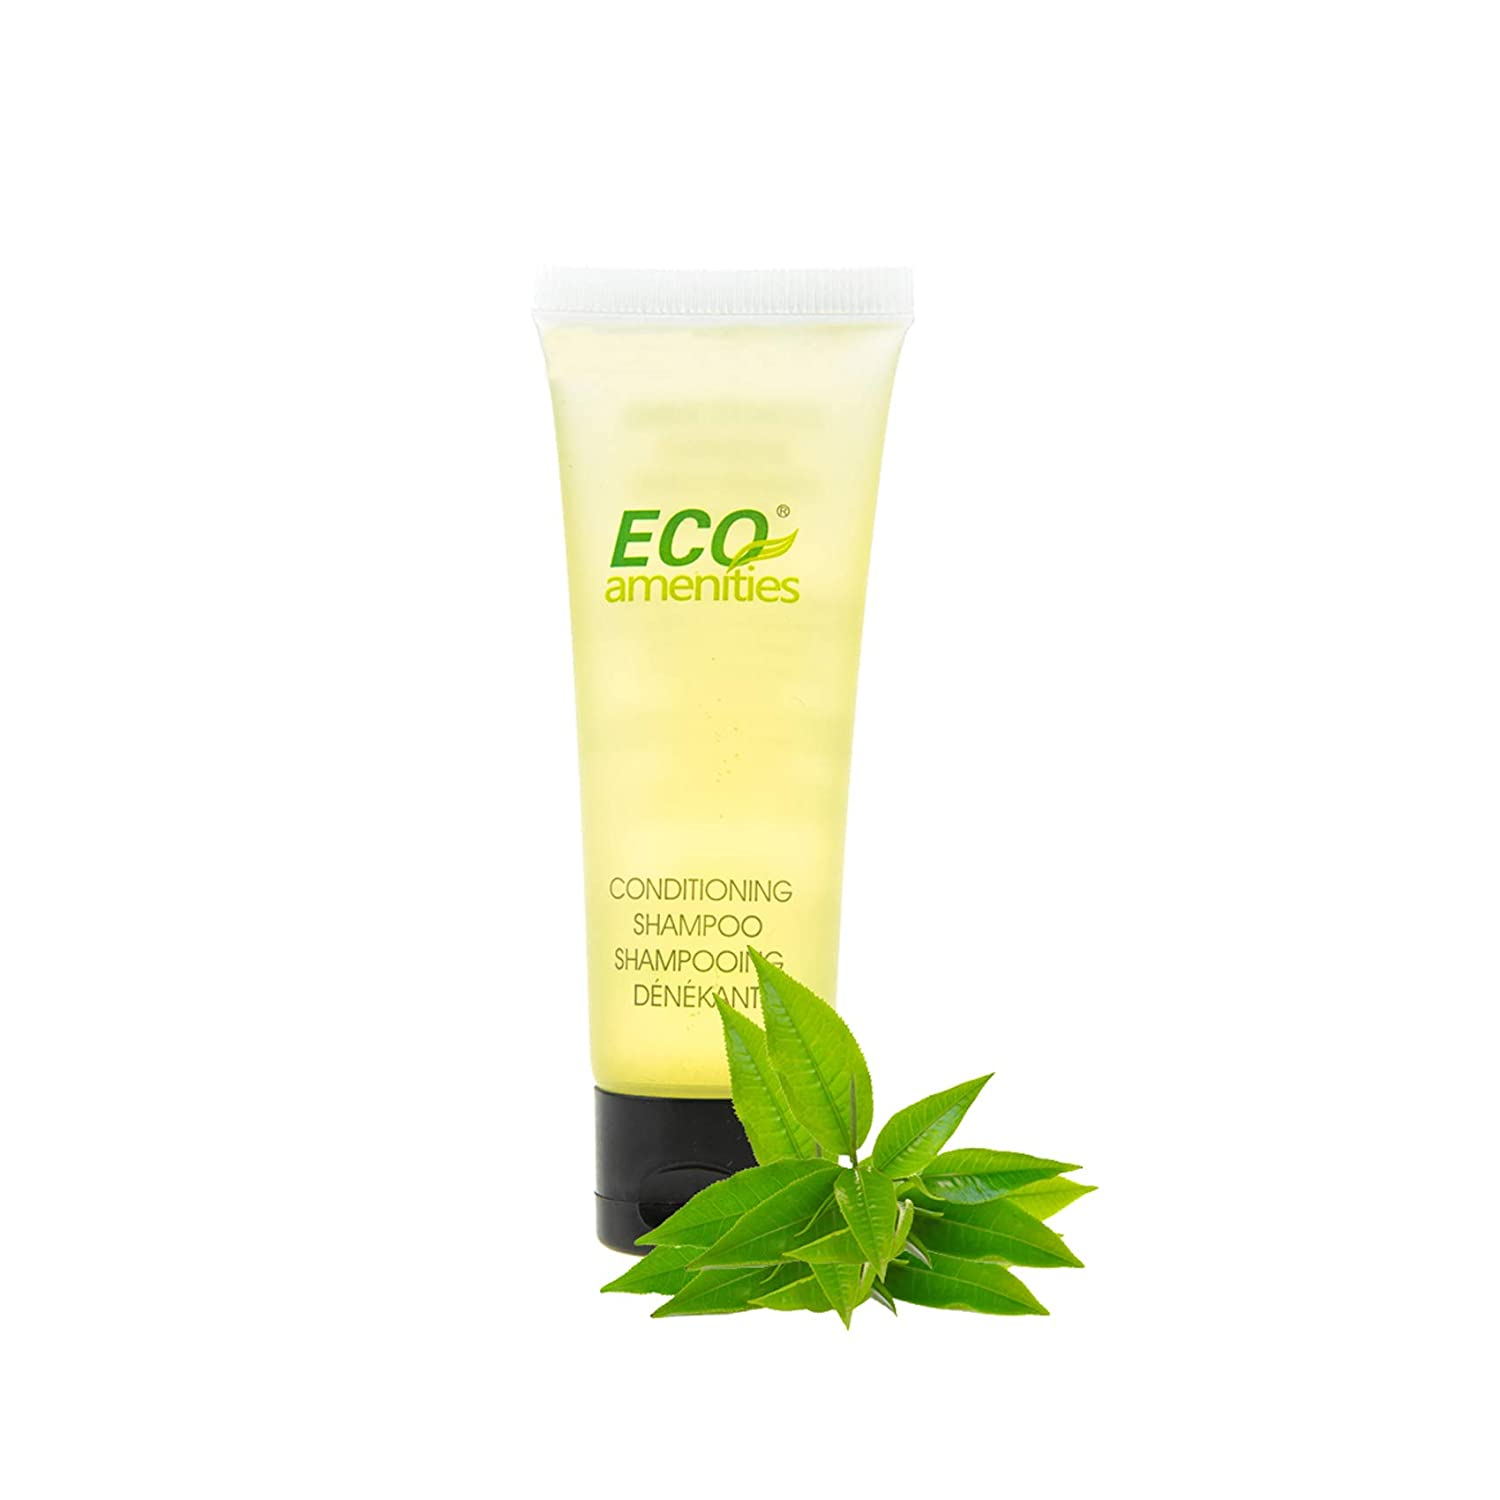 ECO AMENITIES Travel size 1.1oz hotel Conditioning Shampoo in bulk, Clear, 200 Count